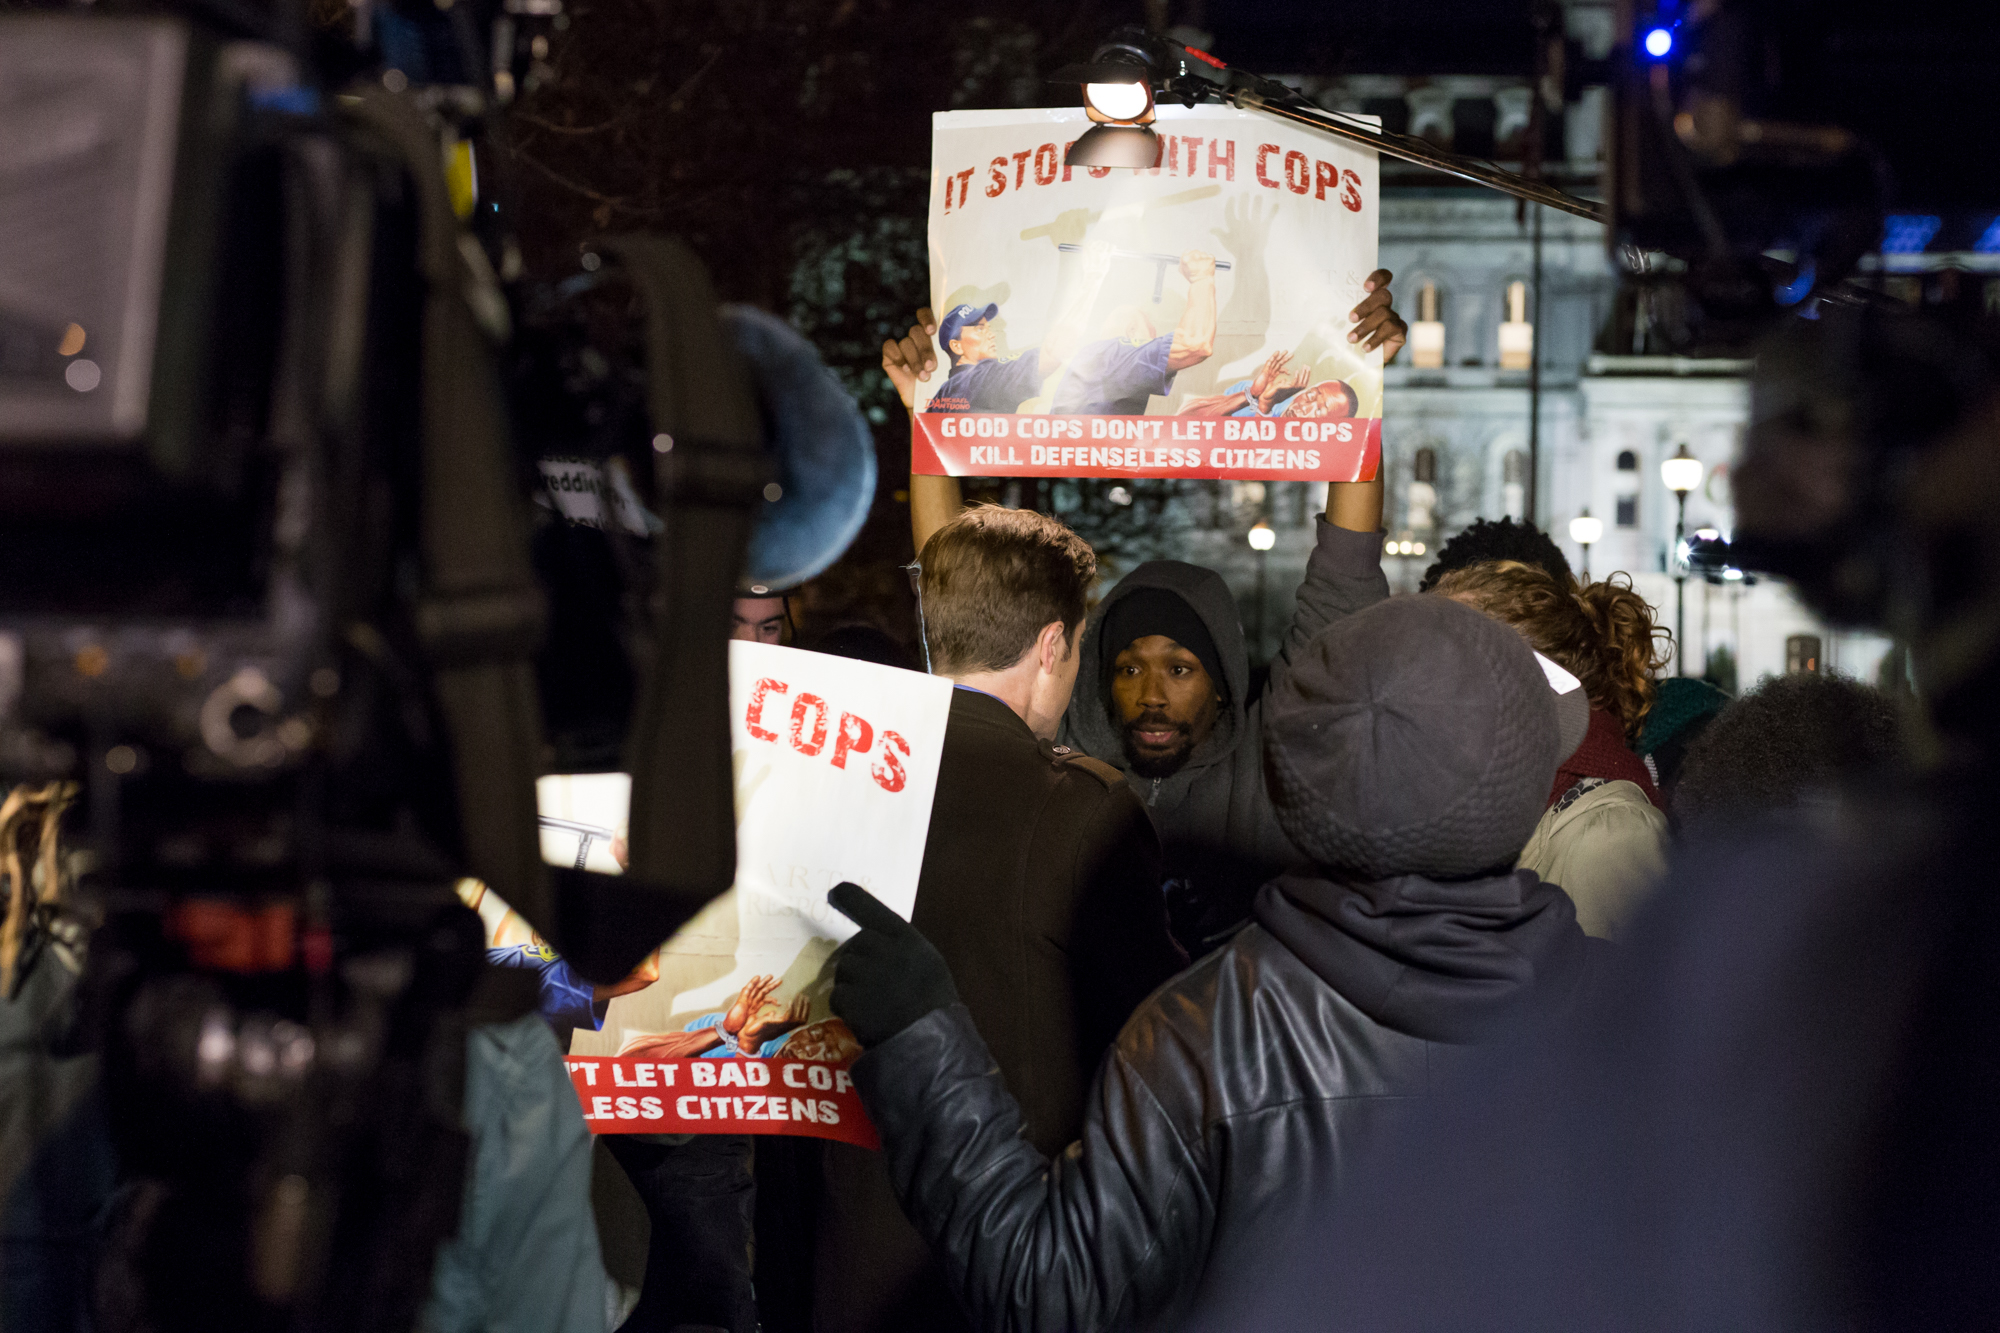 Protesters interrupt TV news crews in front of City Hall the night of the Porter mistrial ruling.